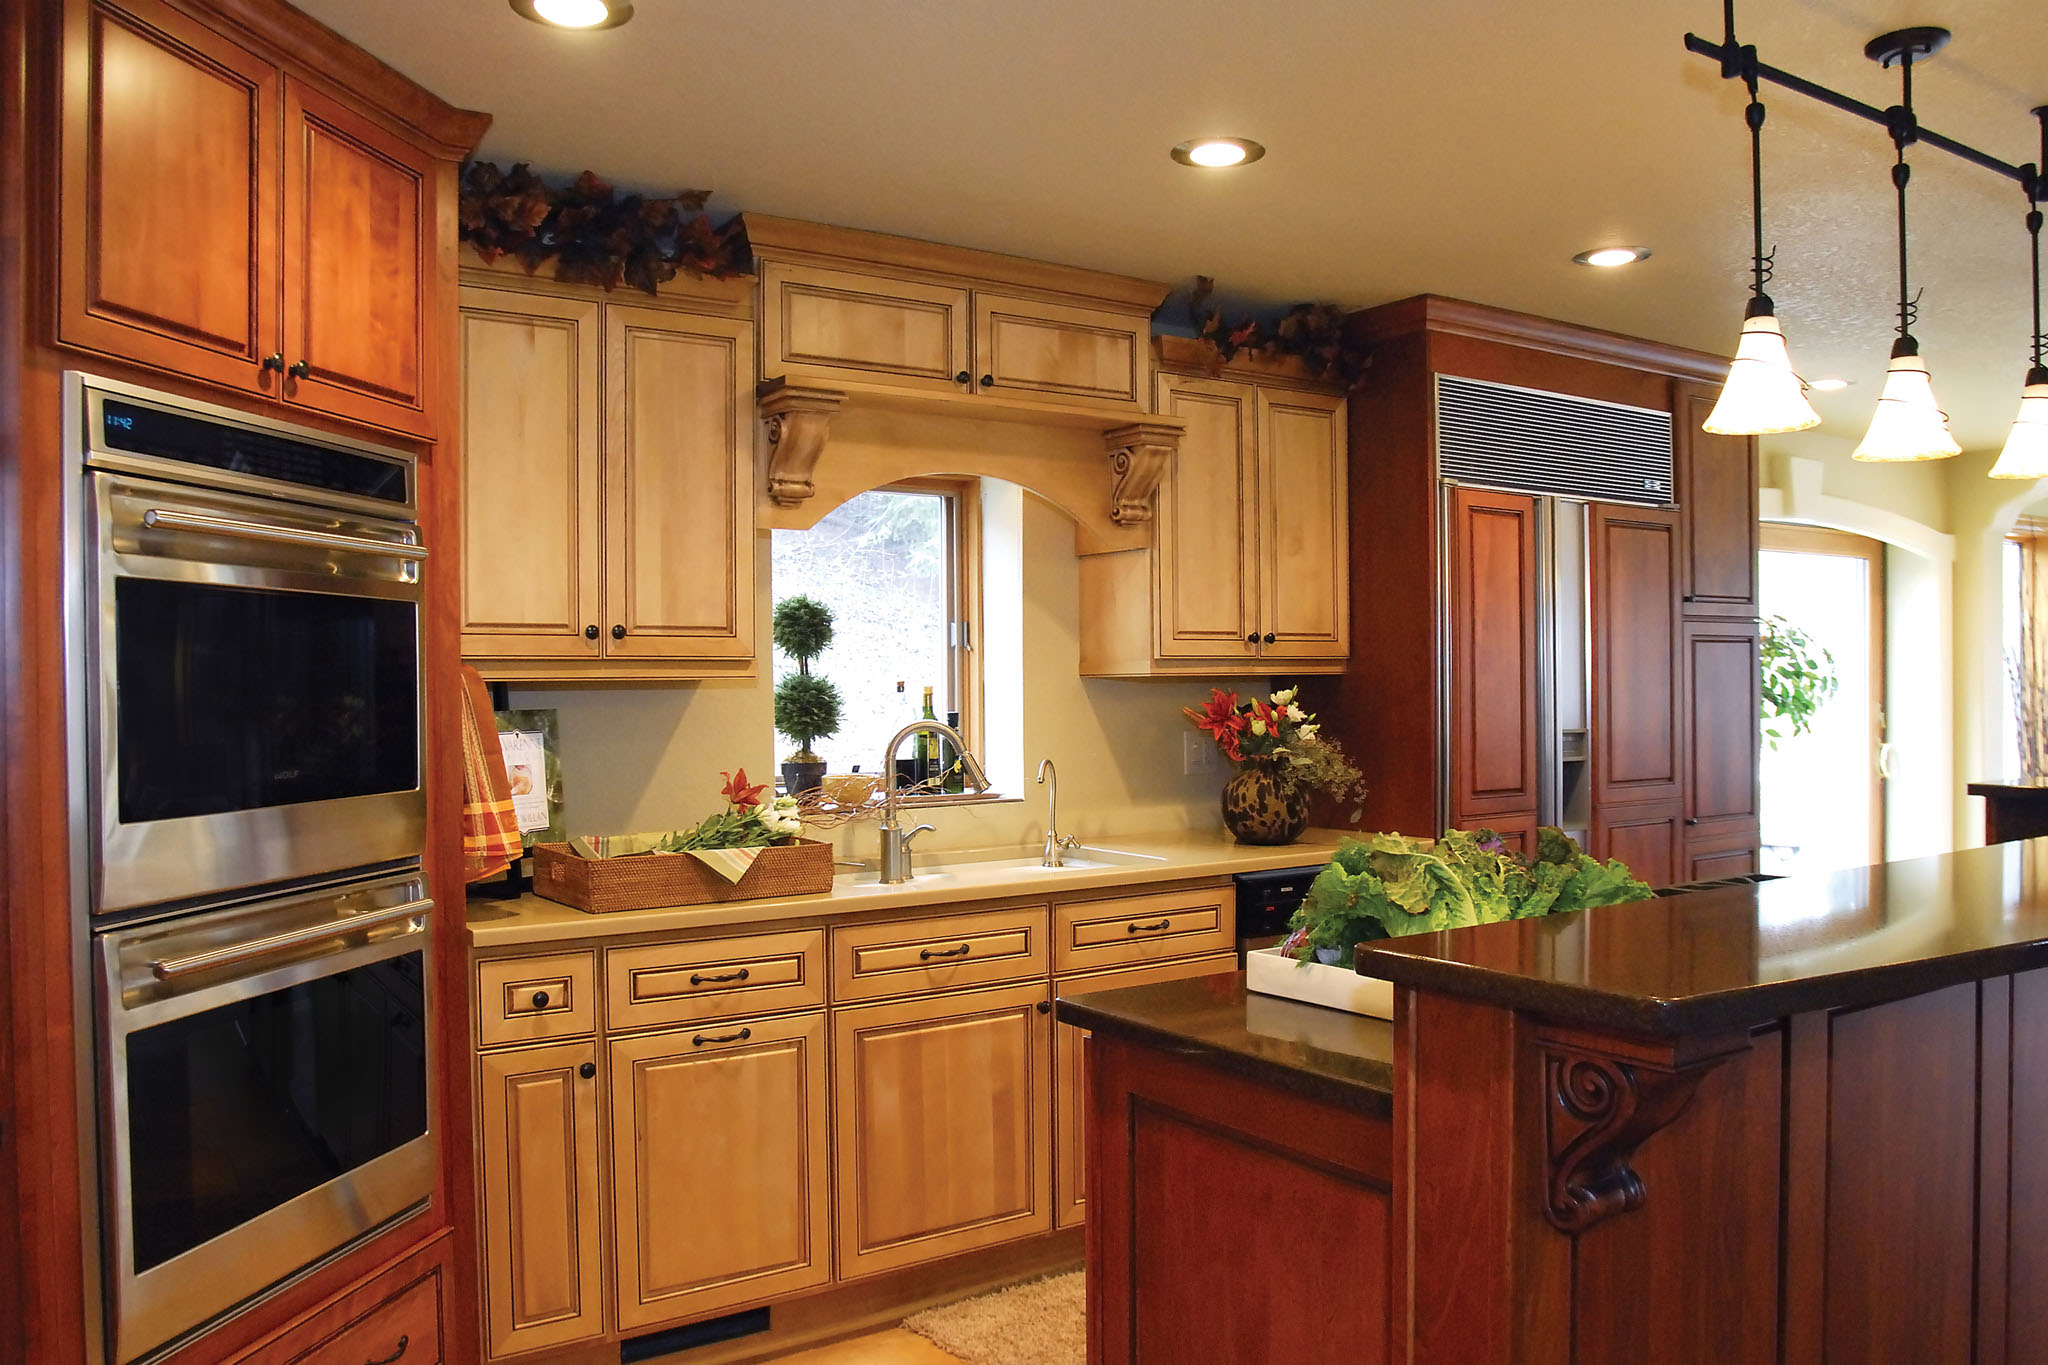 images of remodeled kitchens kitchen island table with chairs remodeling pictures  remodel quick tips